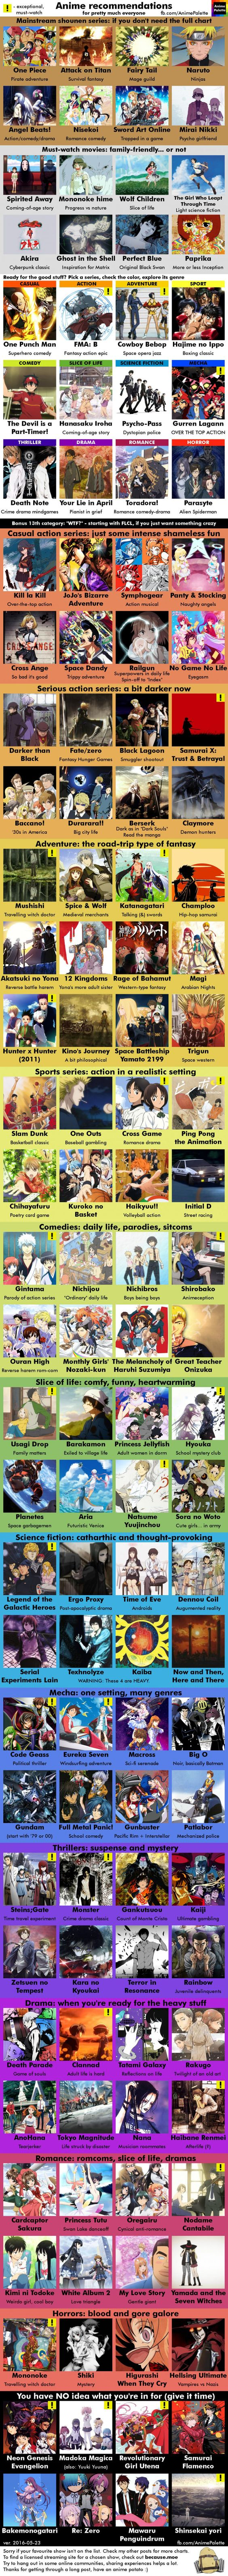 Anime recommendations ~Pretty good list if you're a beginner looking for something to suit your taste